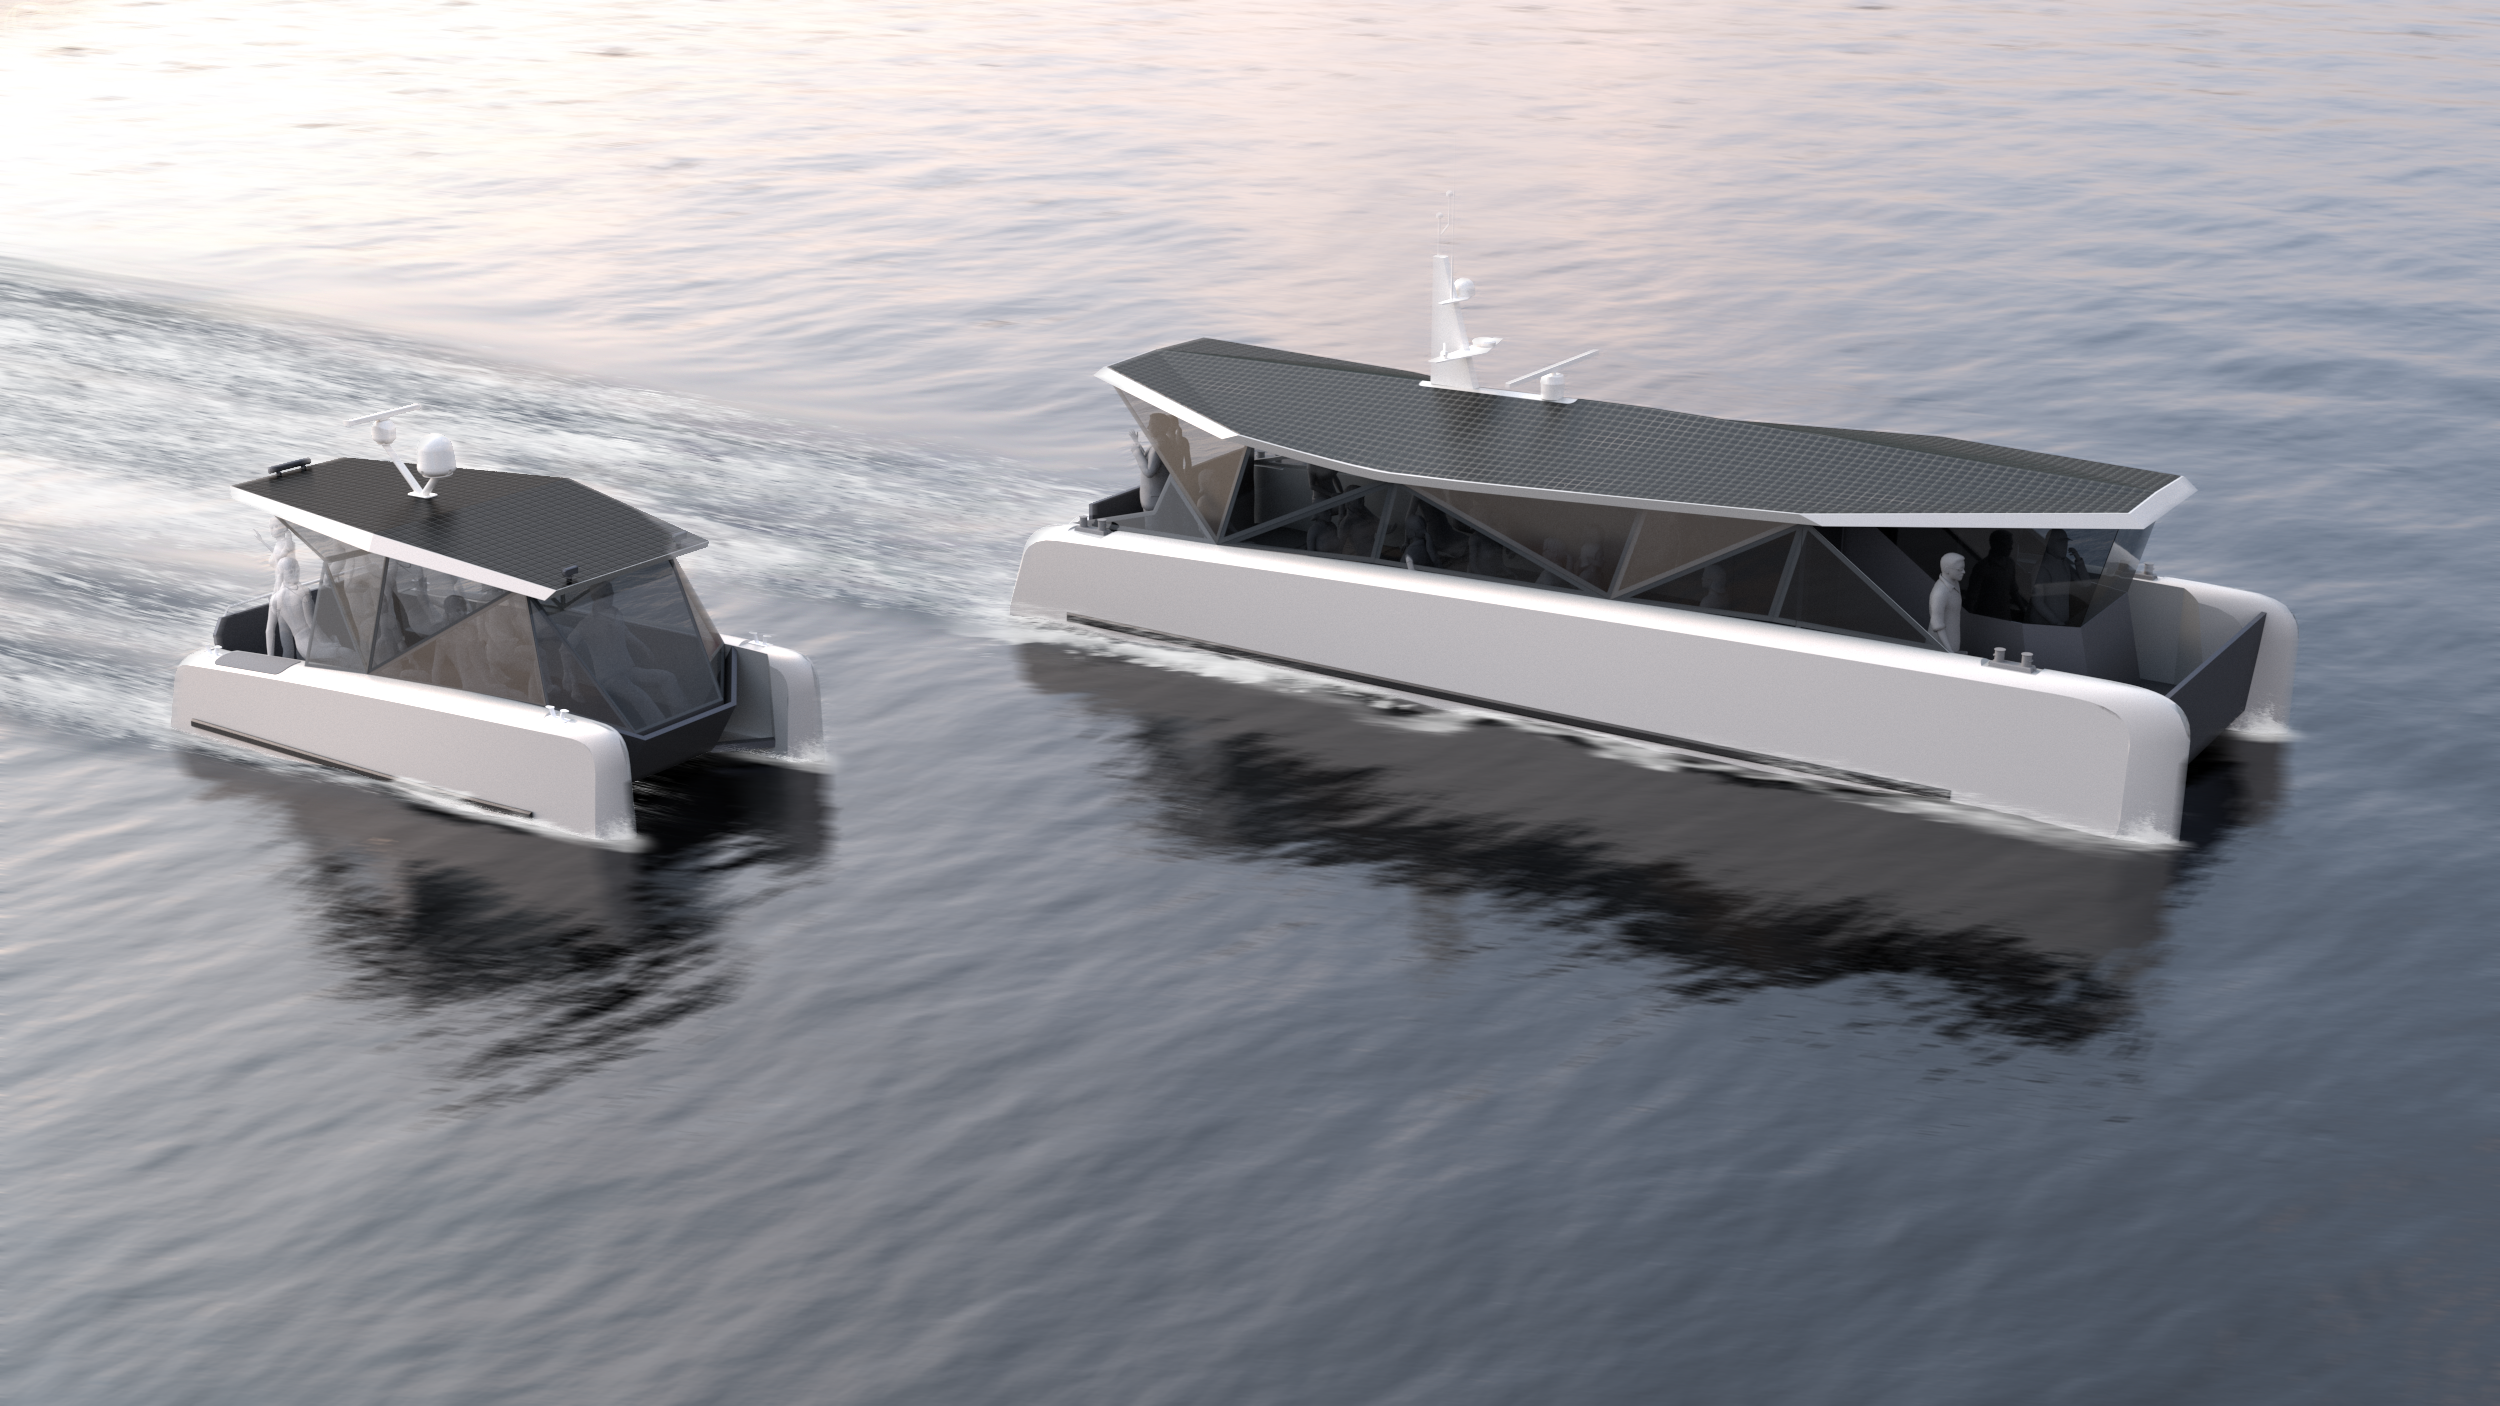 Solar fuelled ferry - Marine design